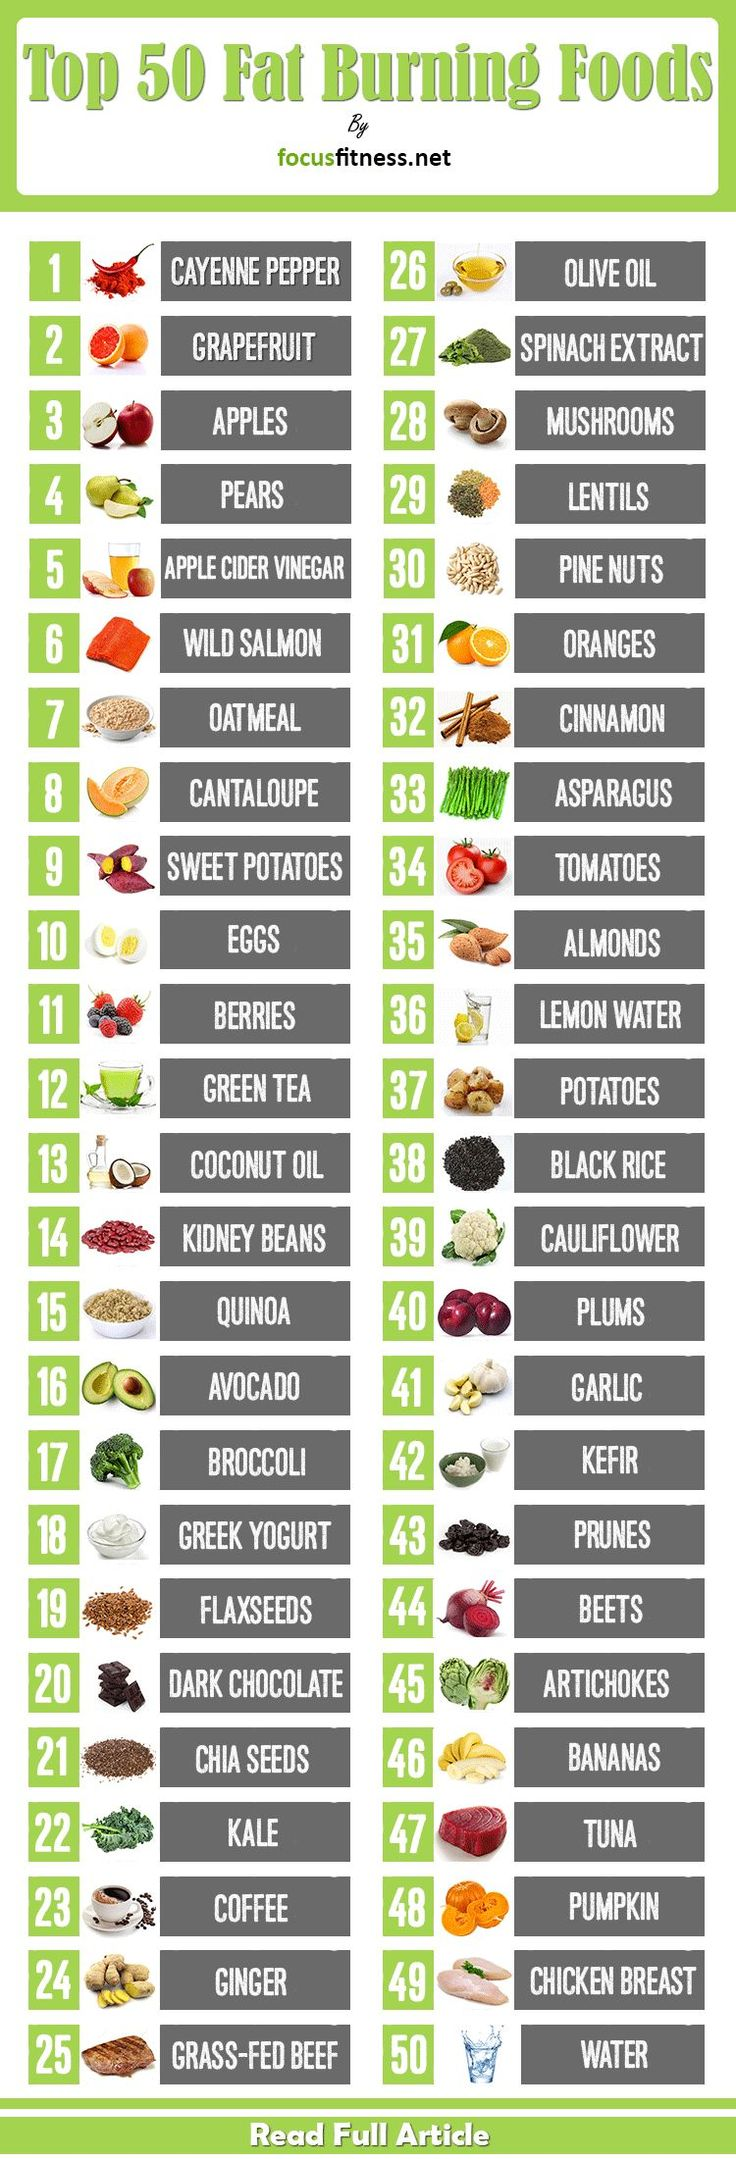 fat burning foods for weight loss http://www.focusfitness.net/fat-burning-foods-for-weight-loss/ Mehr zum Abnehmen gibt es auf interessante-dinge.de